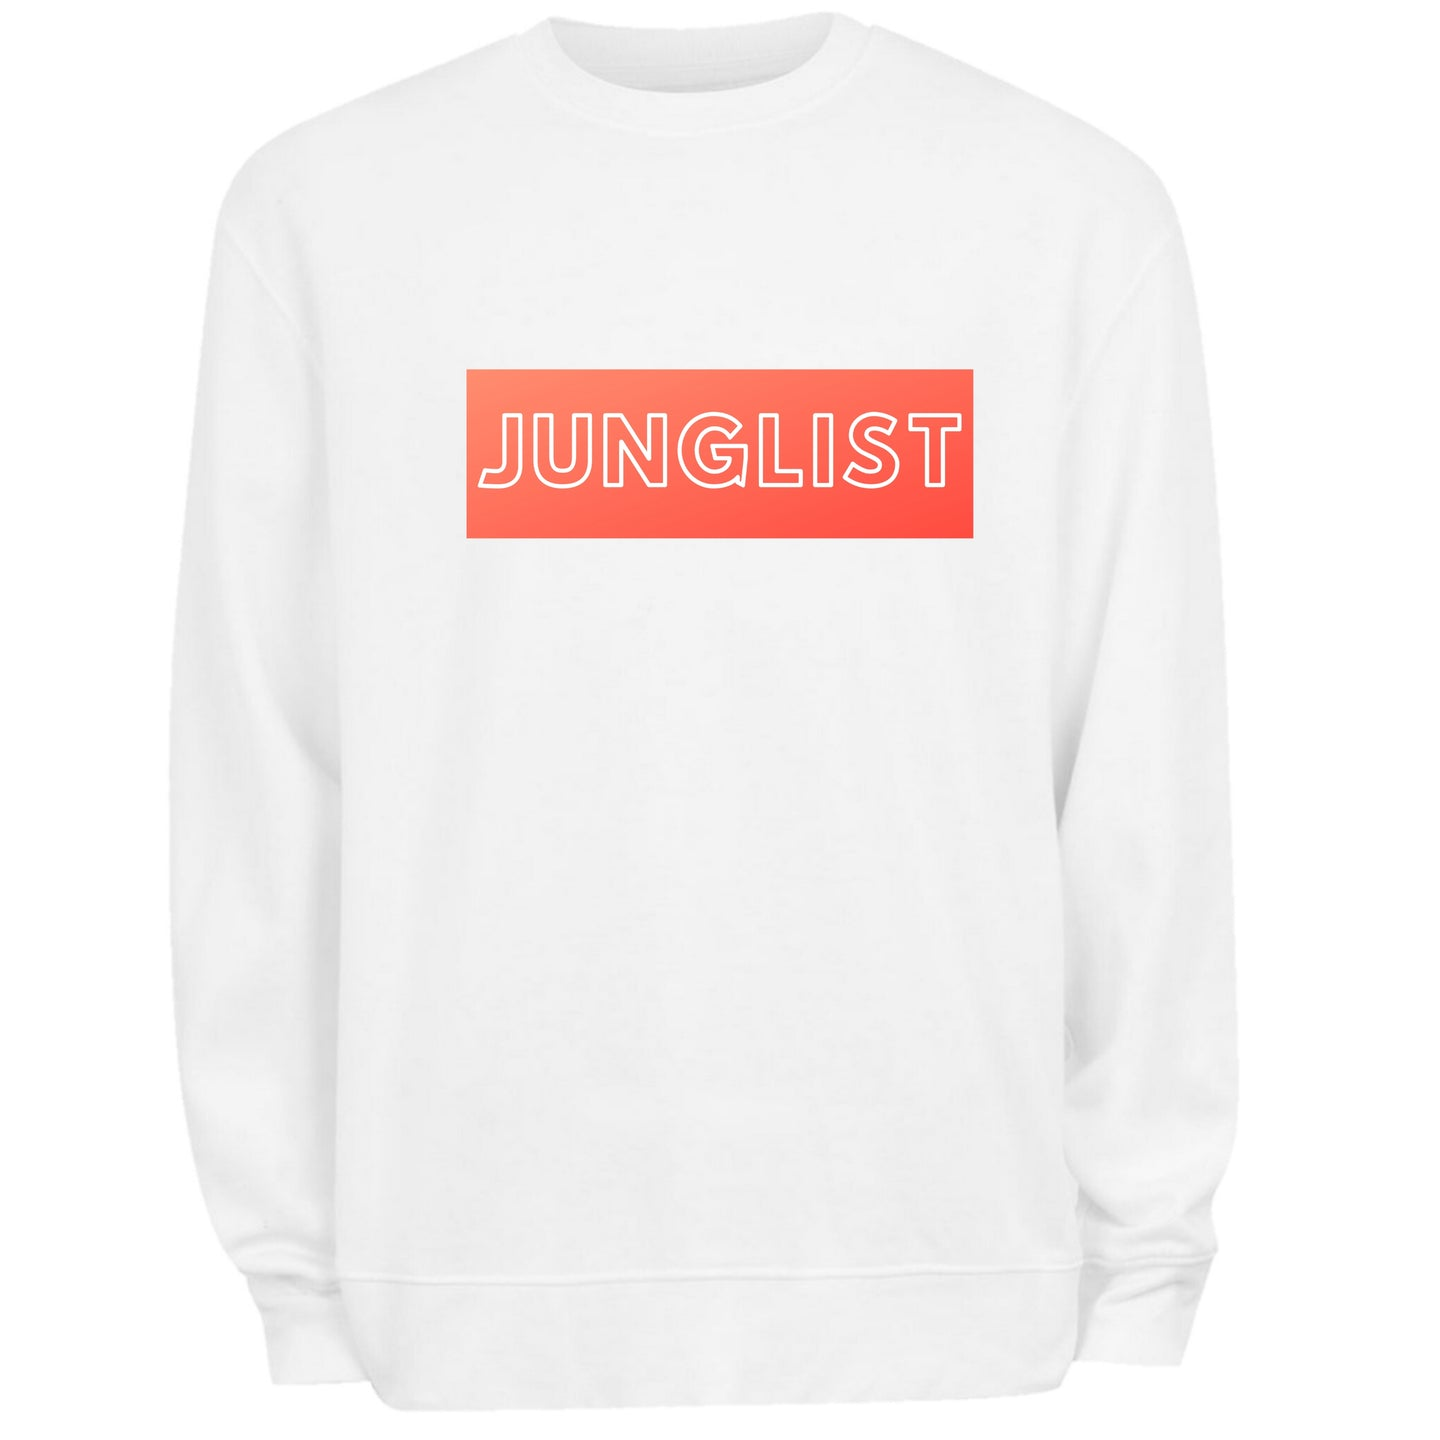 Junglist Block Sweatshirt mens ladies